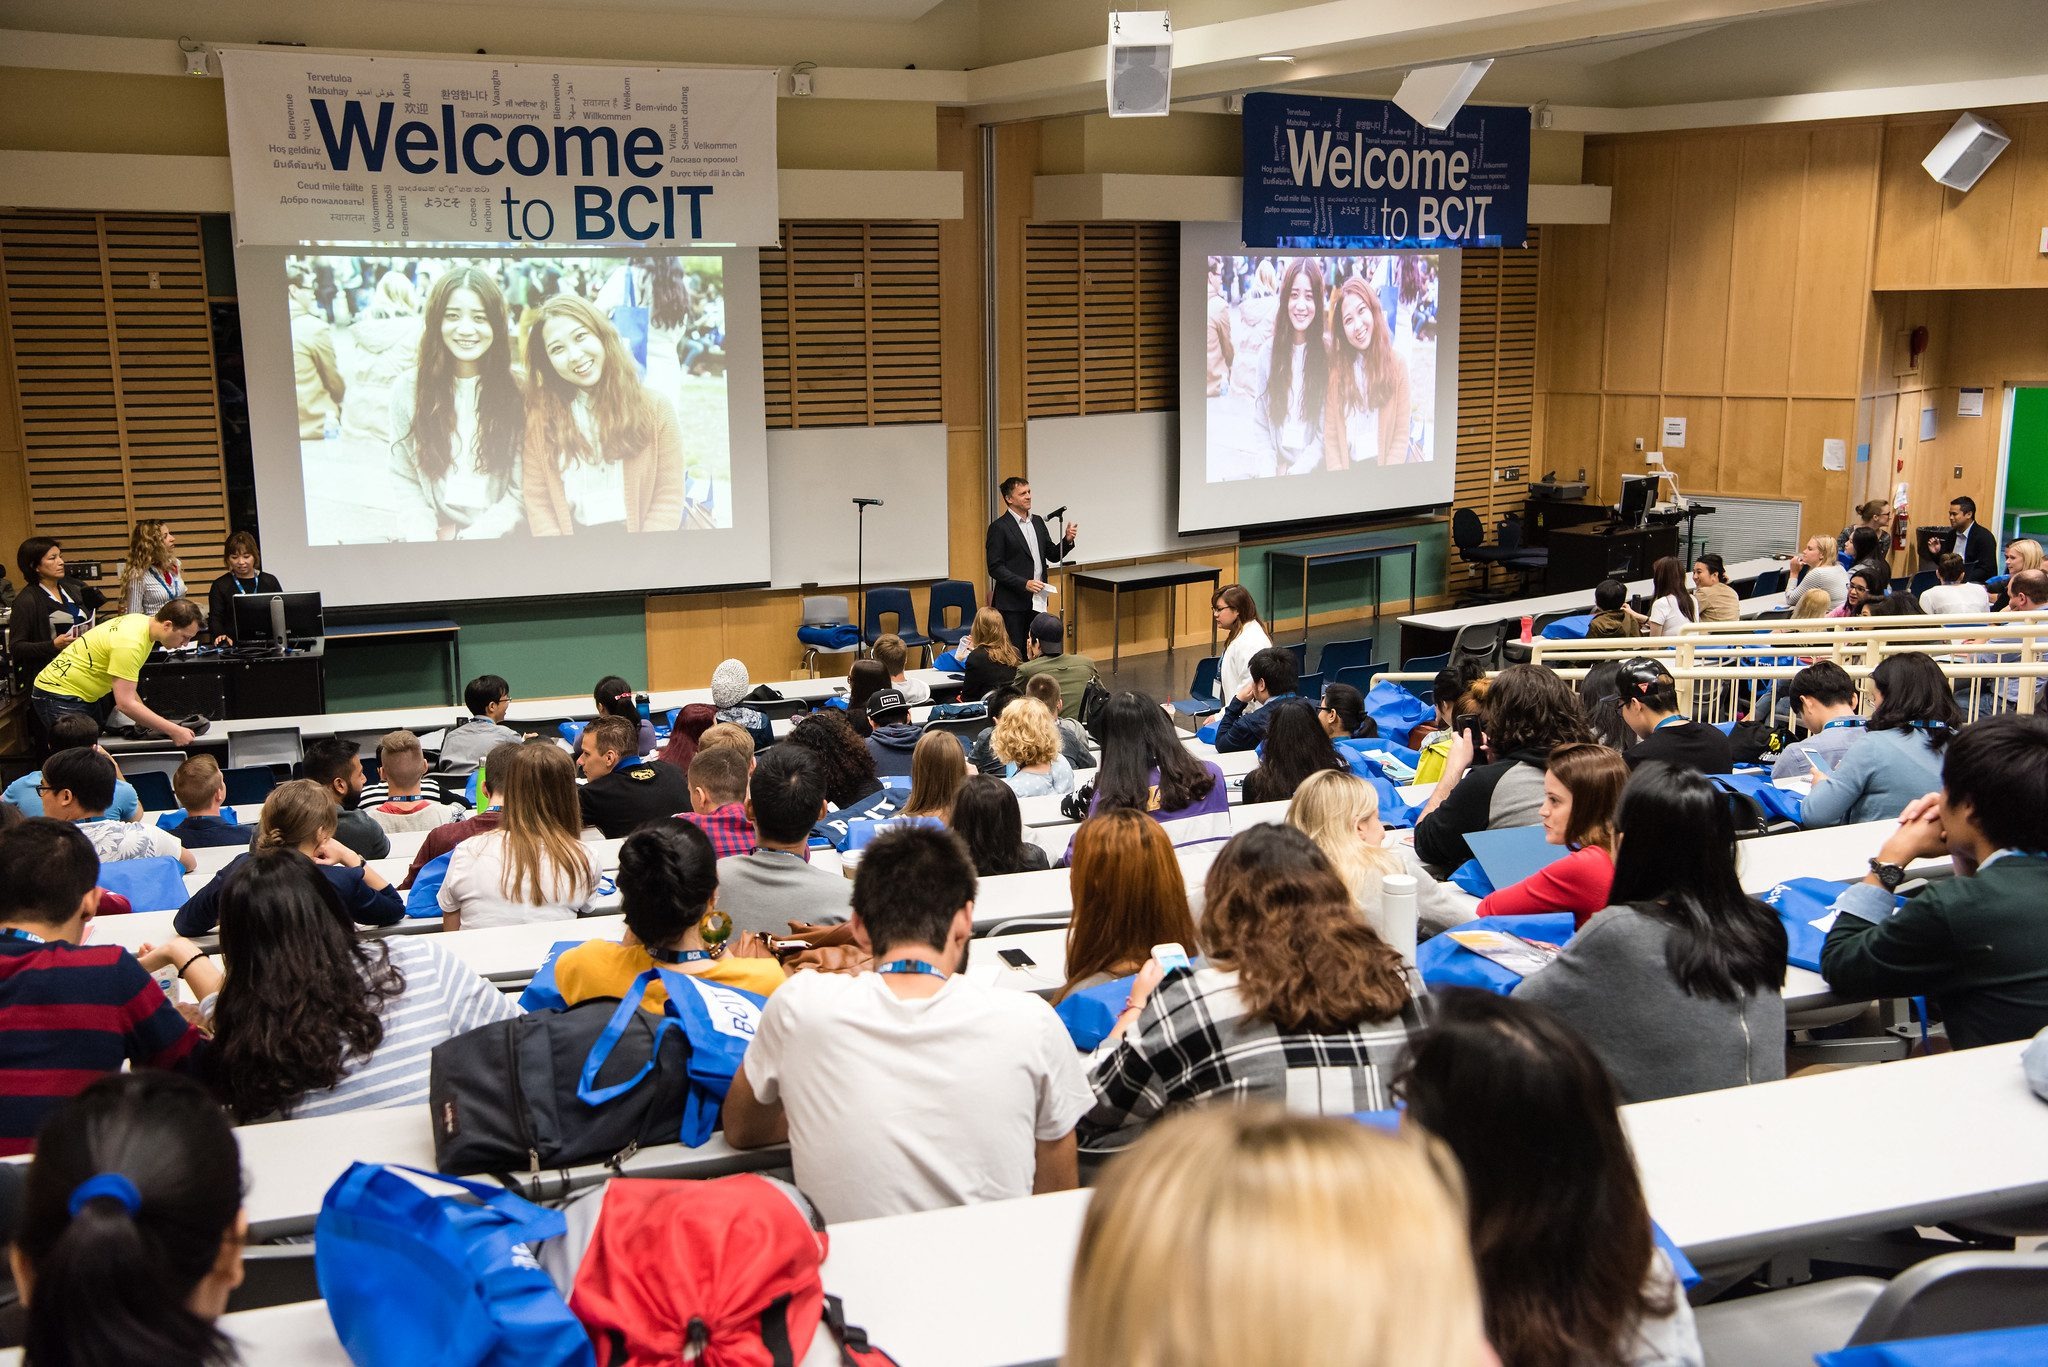 International Orientation event in lecture hall at BCIT